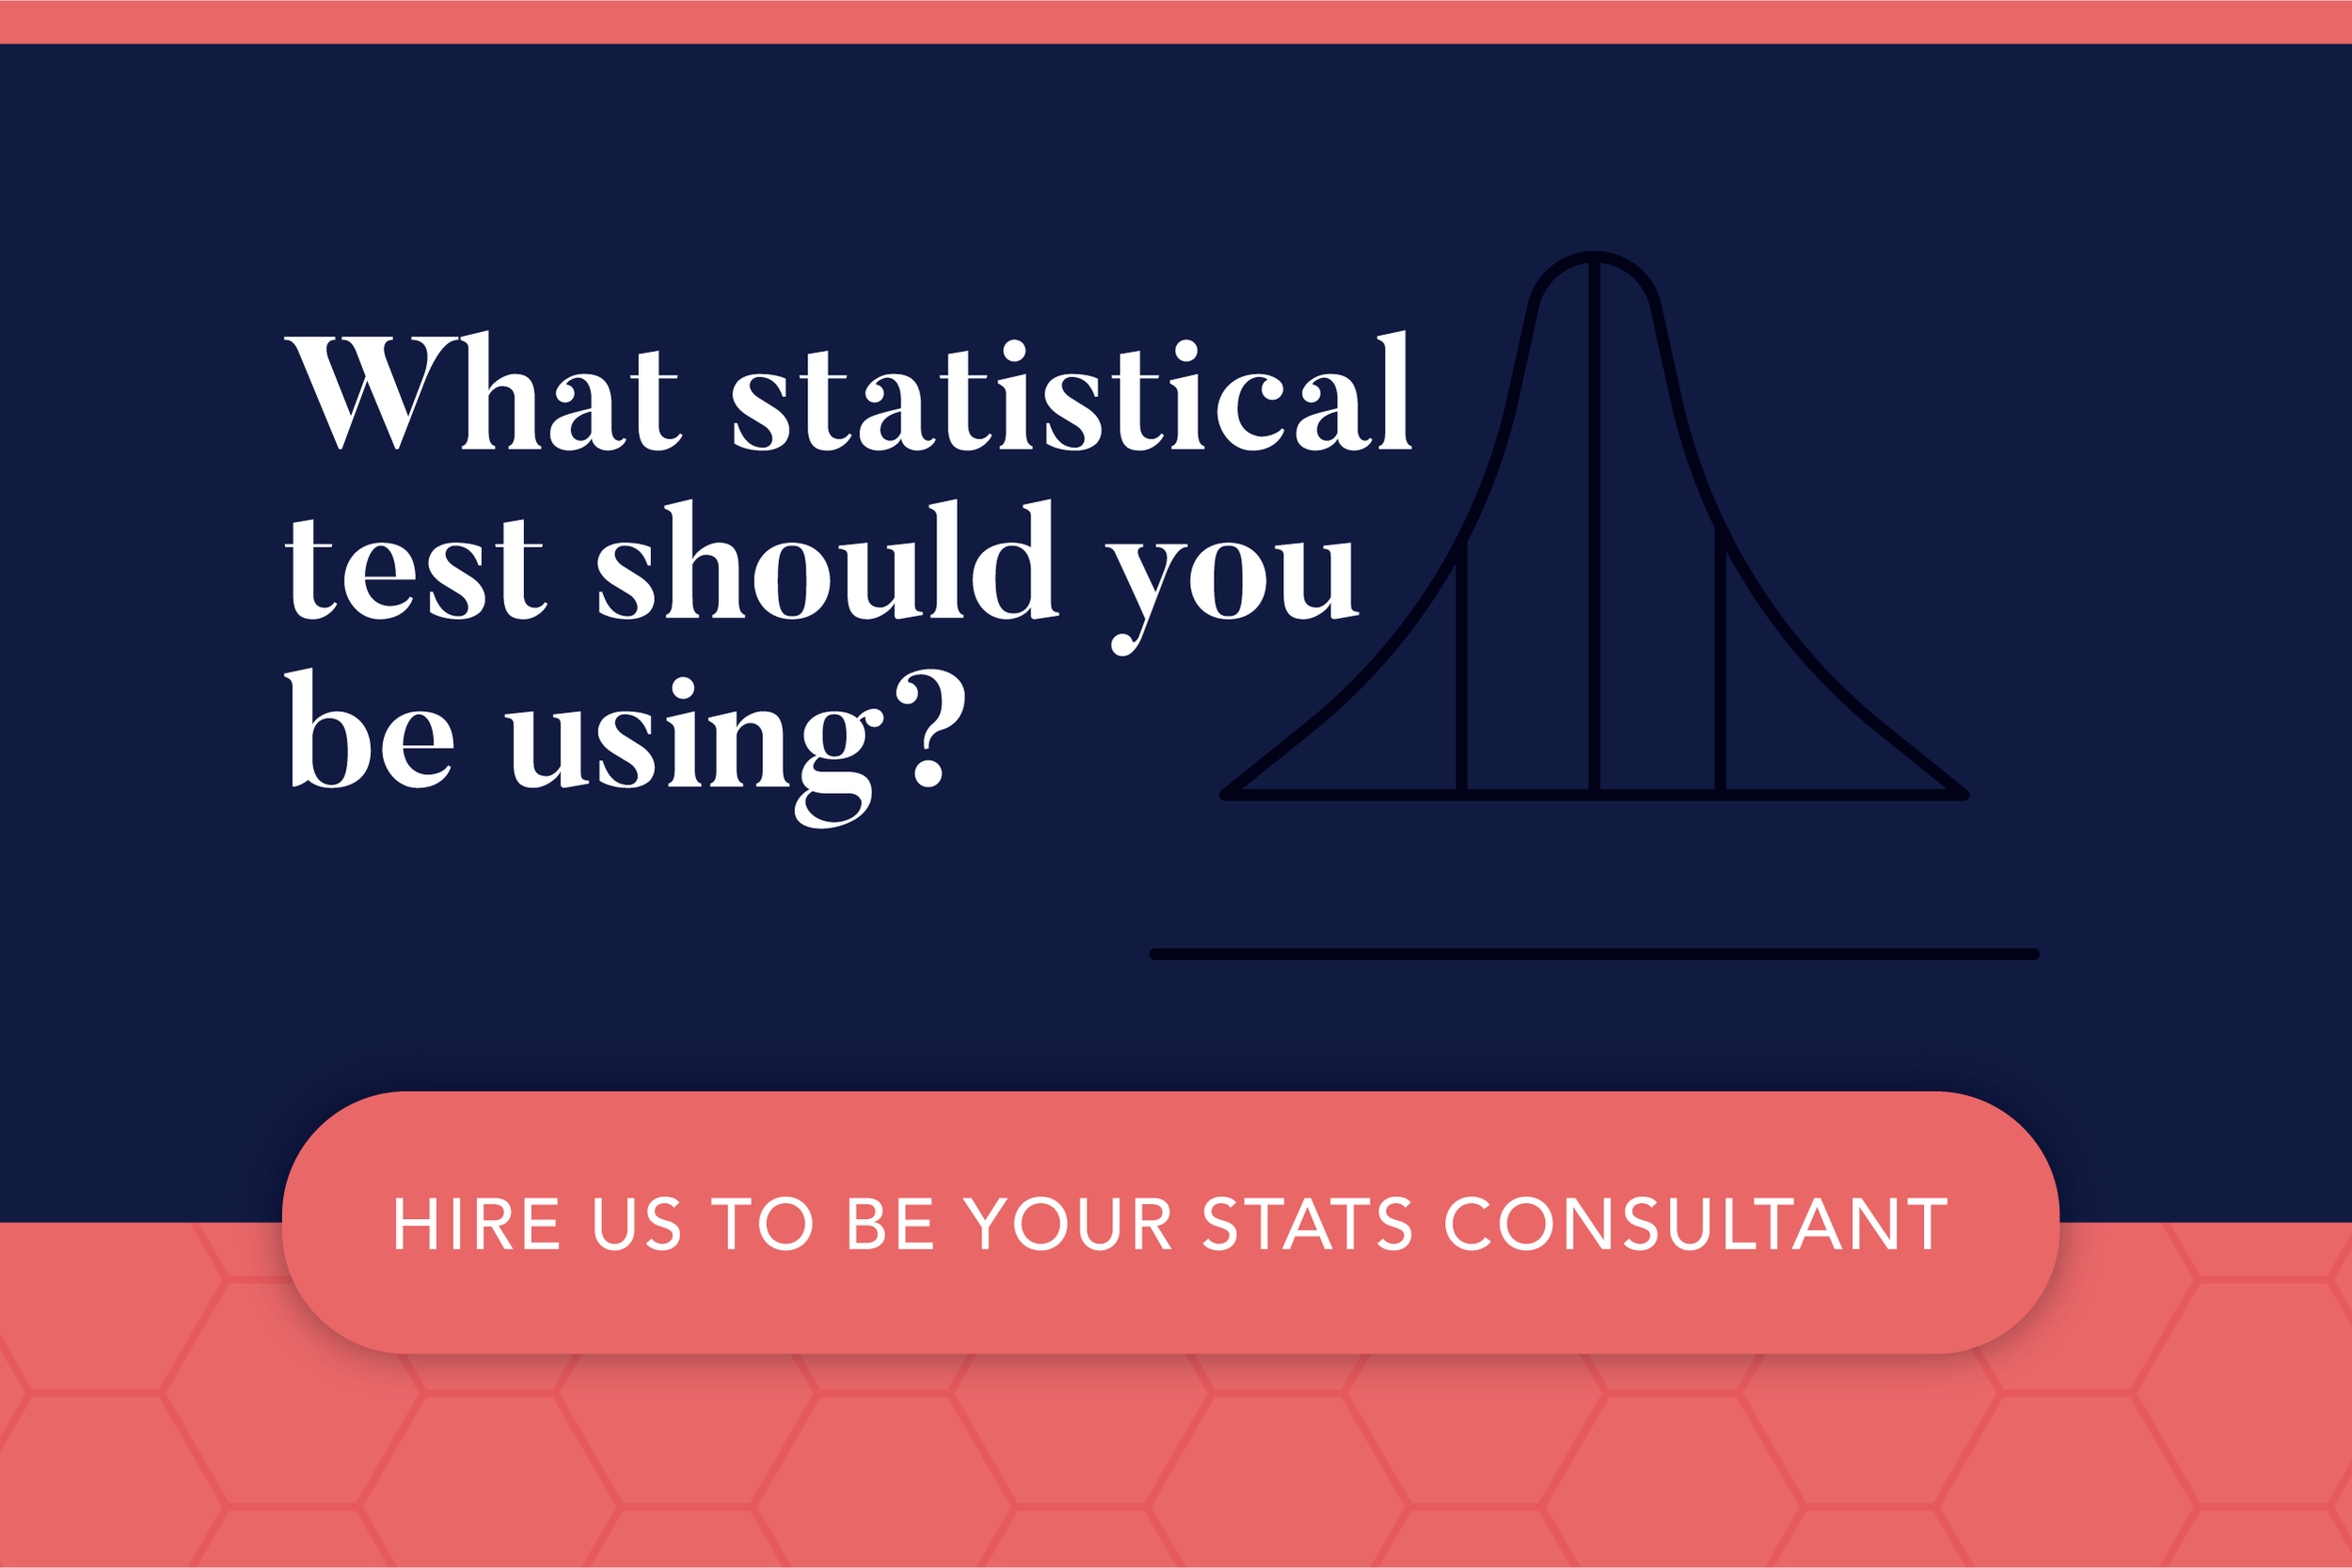 Inkblot Academy Research Training Consulting Courses what statistical test should I use.png